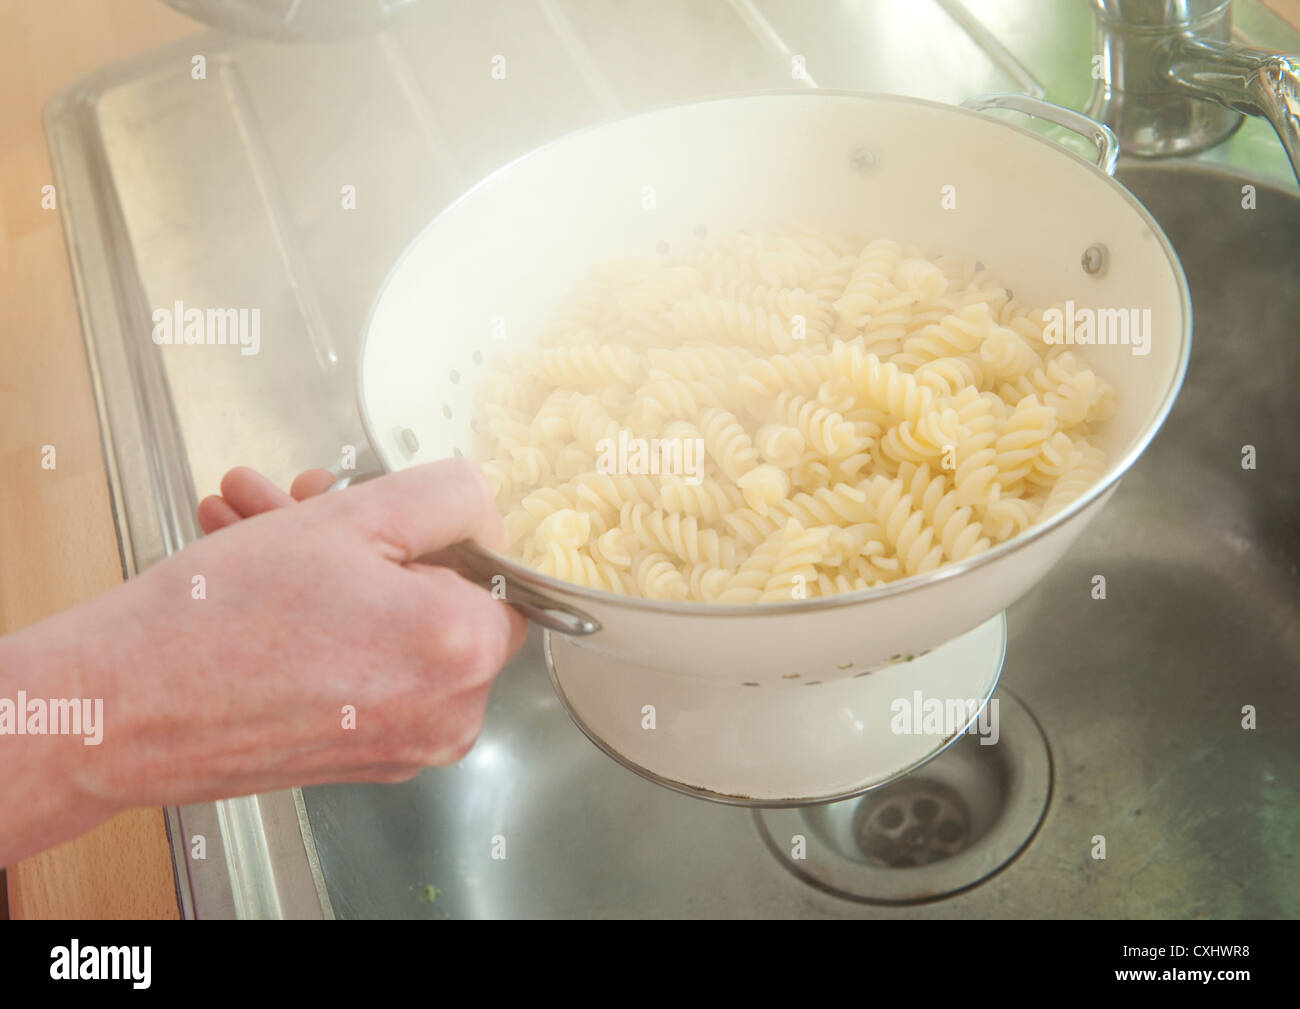 Steam rising from pasta being drained in a colander over a kitchen sink. - Stock Image